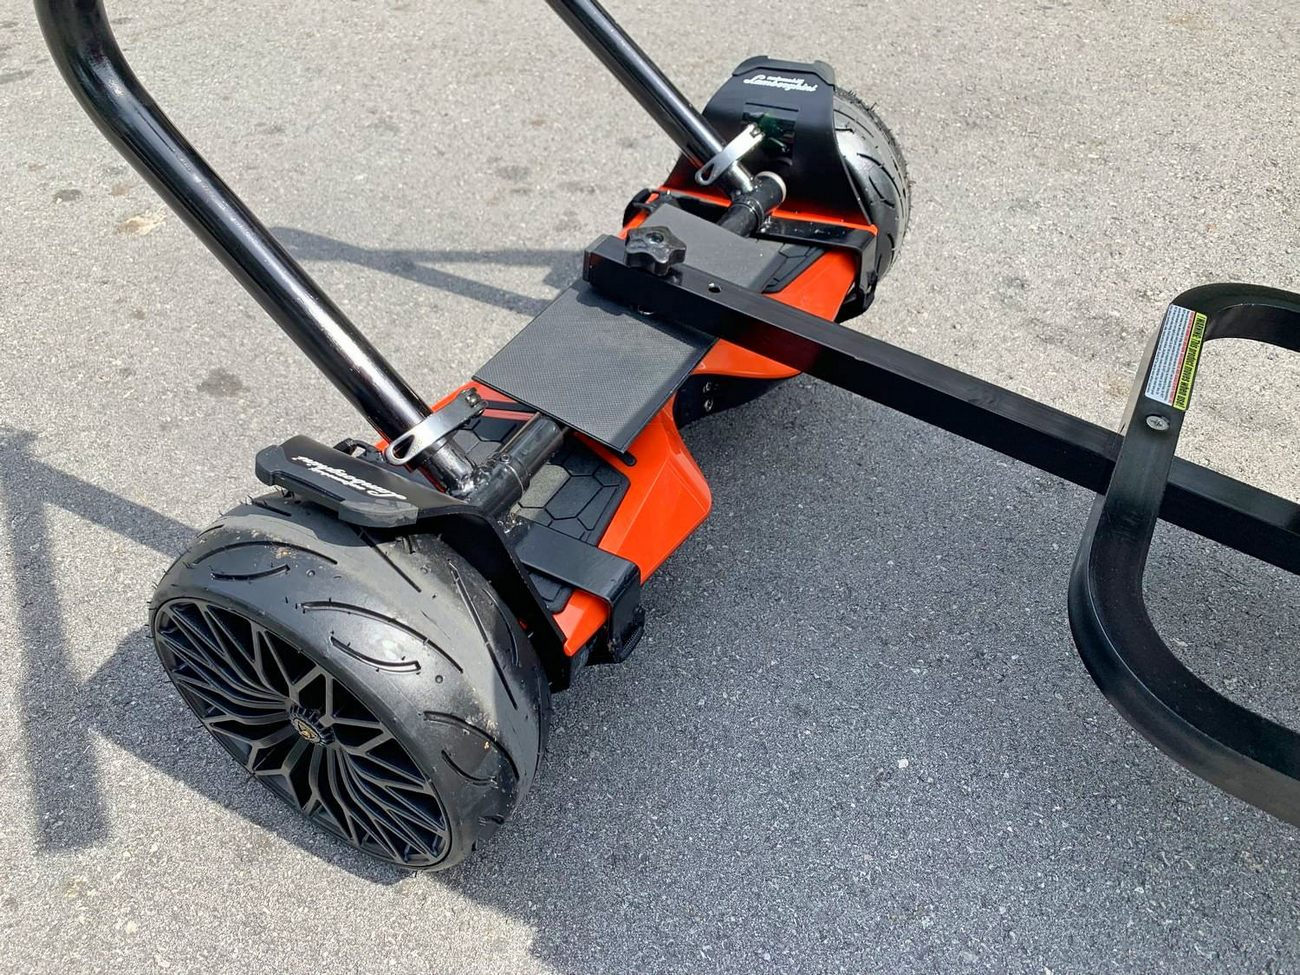 Handles installed on non round hoverboard